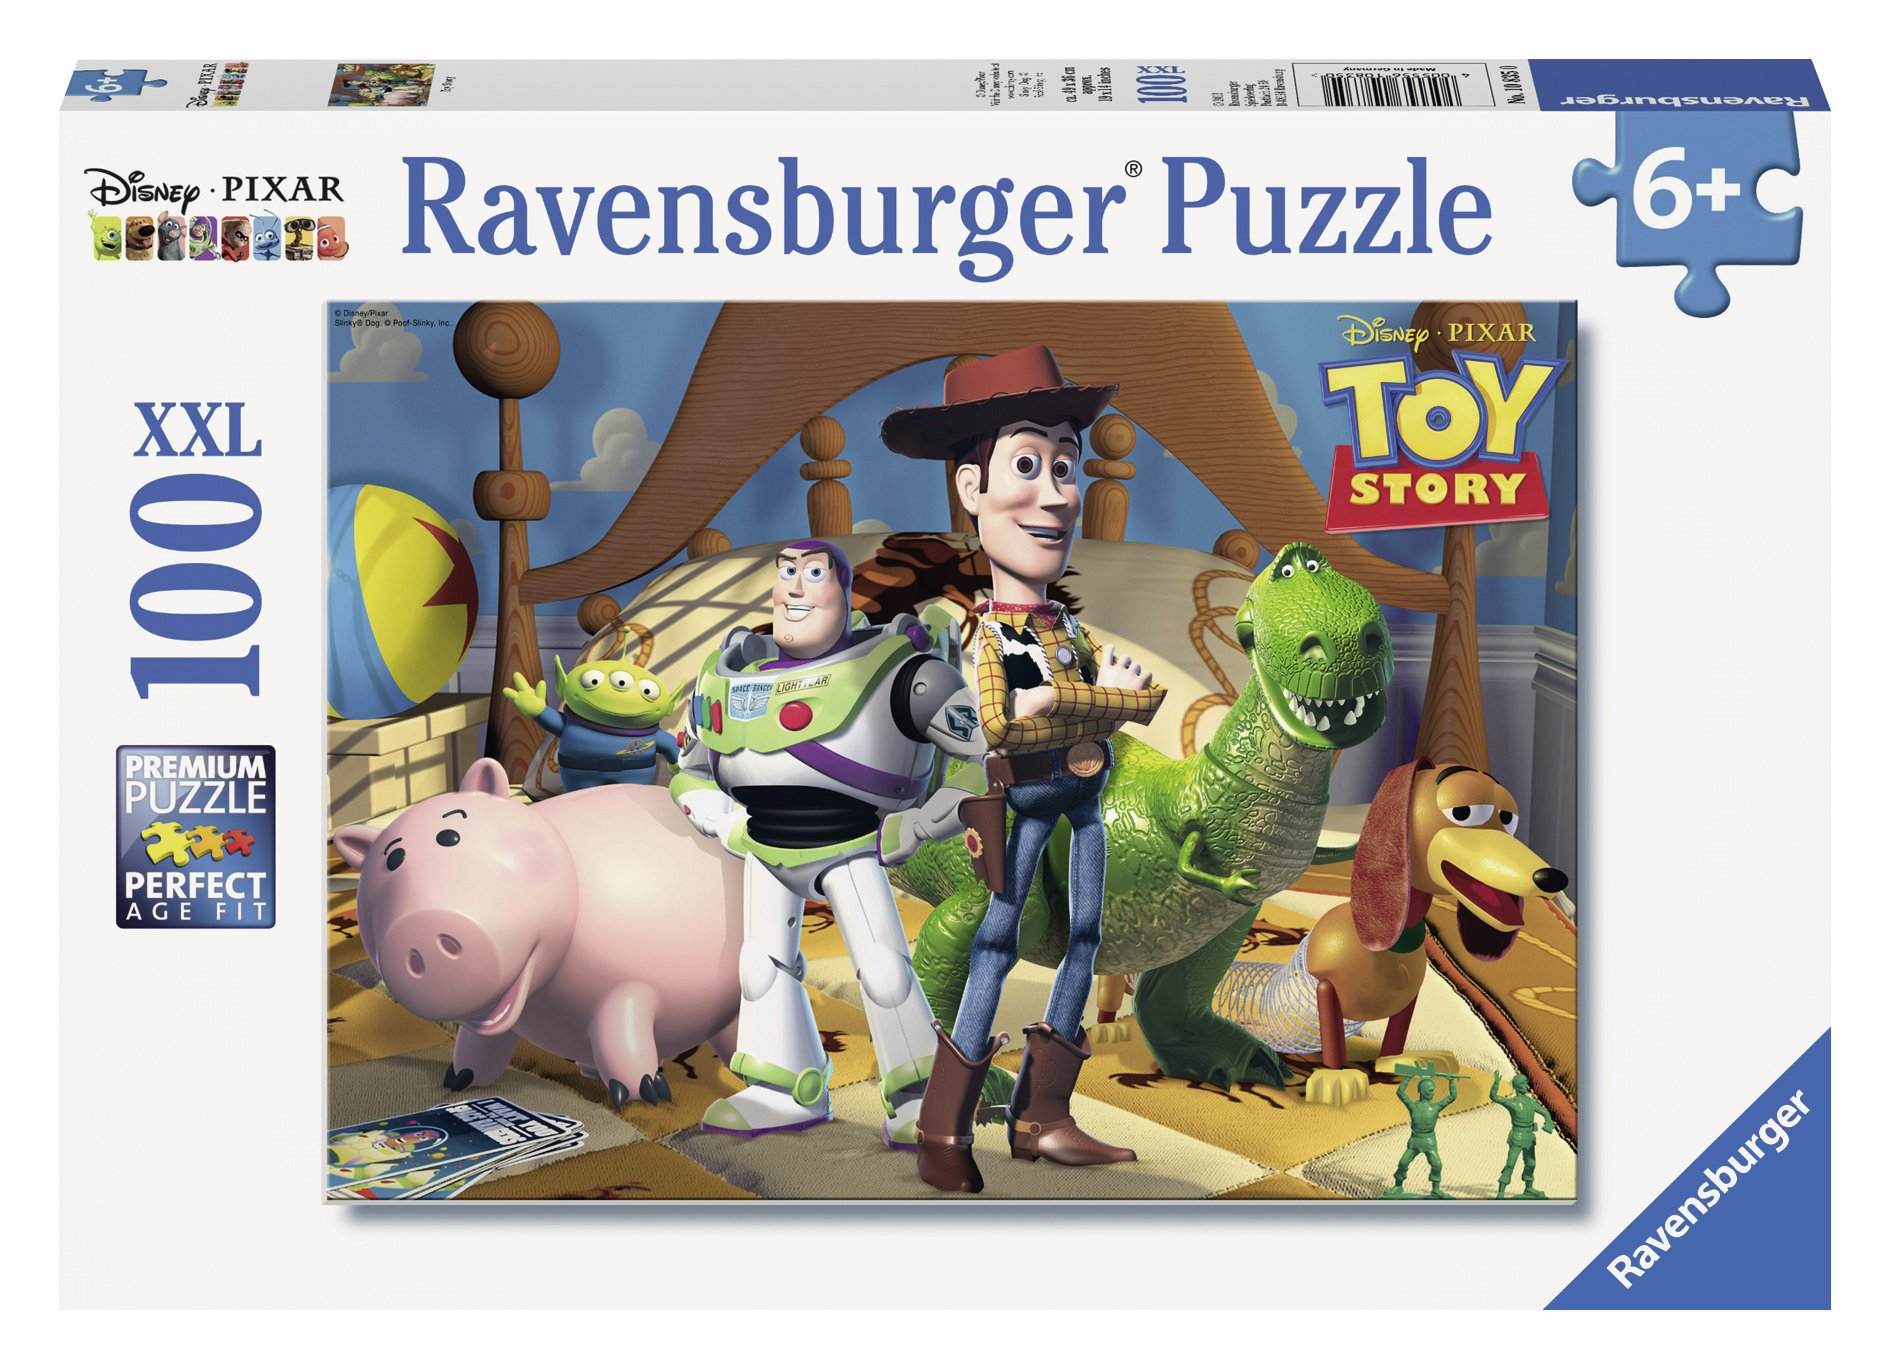 Ravensburger Disney Pixar: Toy Story 100 Piece Jigsaw Puzzle for Kids - Every Piece is Unique, Pieces Fit Together Perfectly by Ravensburger